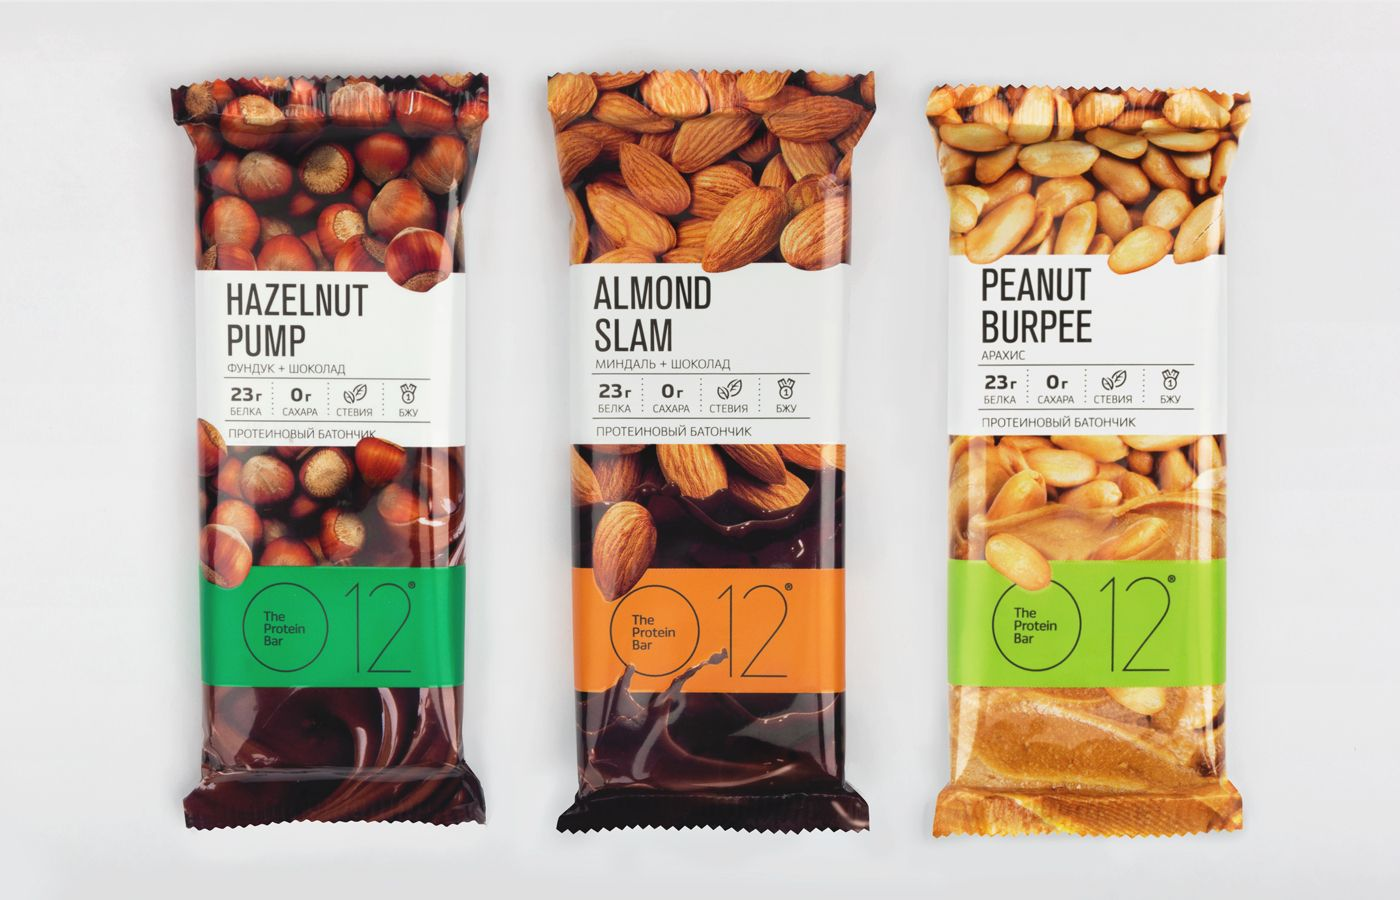 O12 protein bar creative package design package design for Food bar packaging